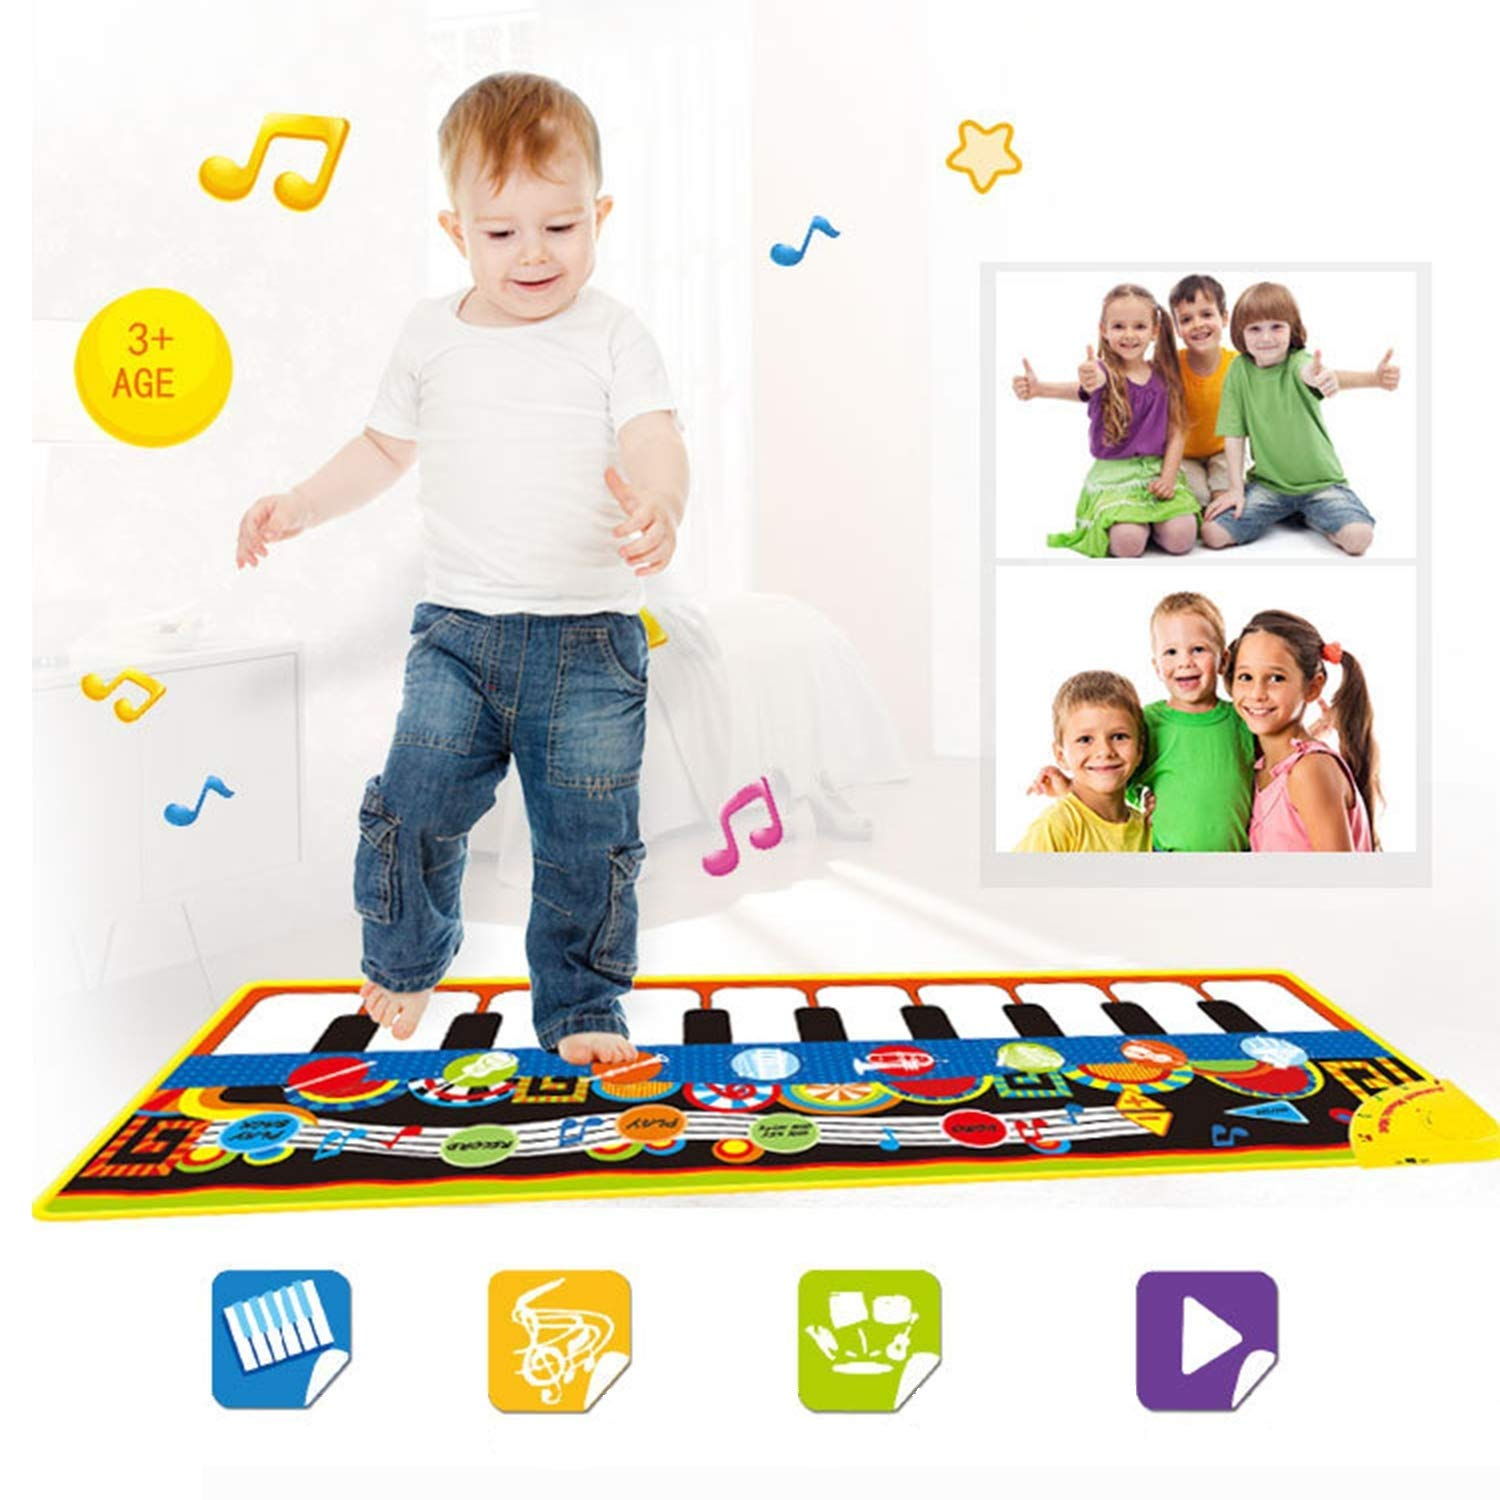 LGZW Baby Play Mat, Children's Play Mat Electronic Piano Music Crawling Blanket Early Education Toy Mat, Educational Toy Area Carpet by LGZW (Image #2)